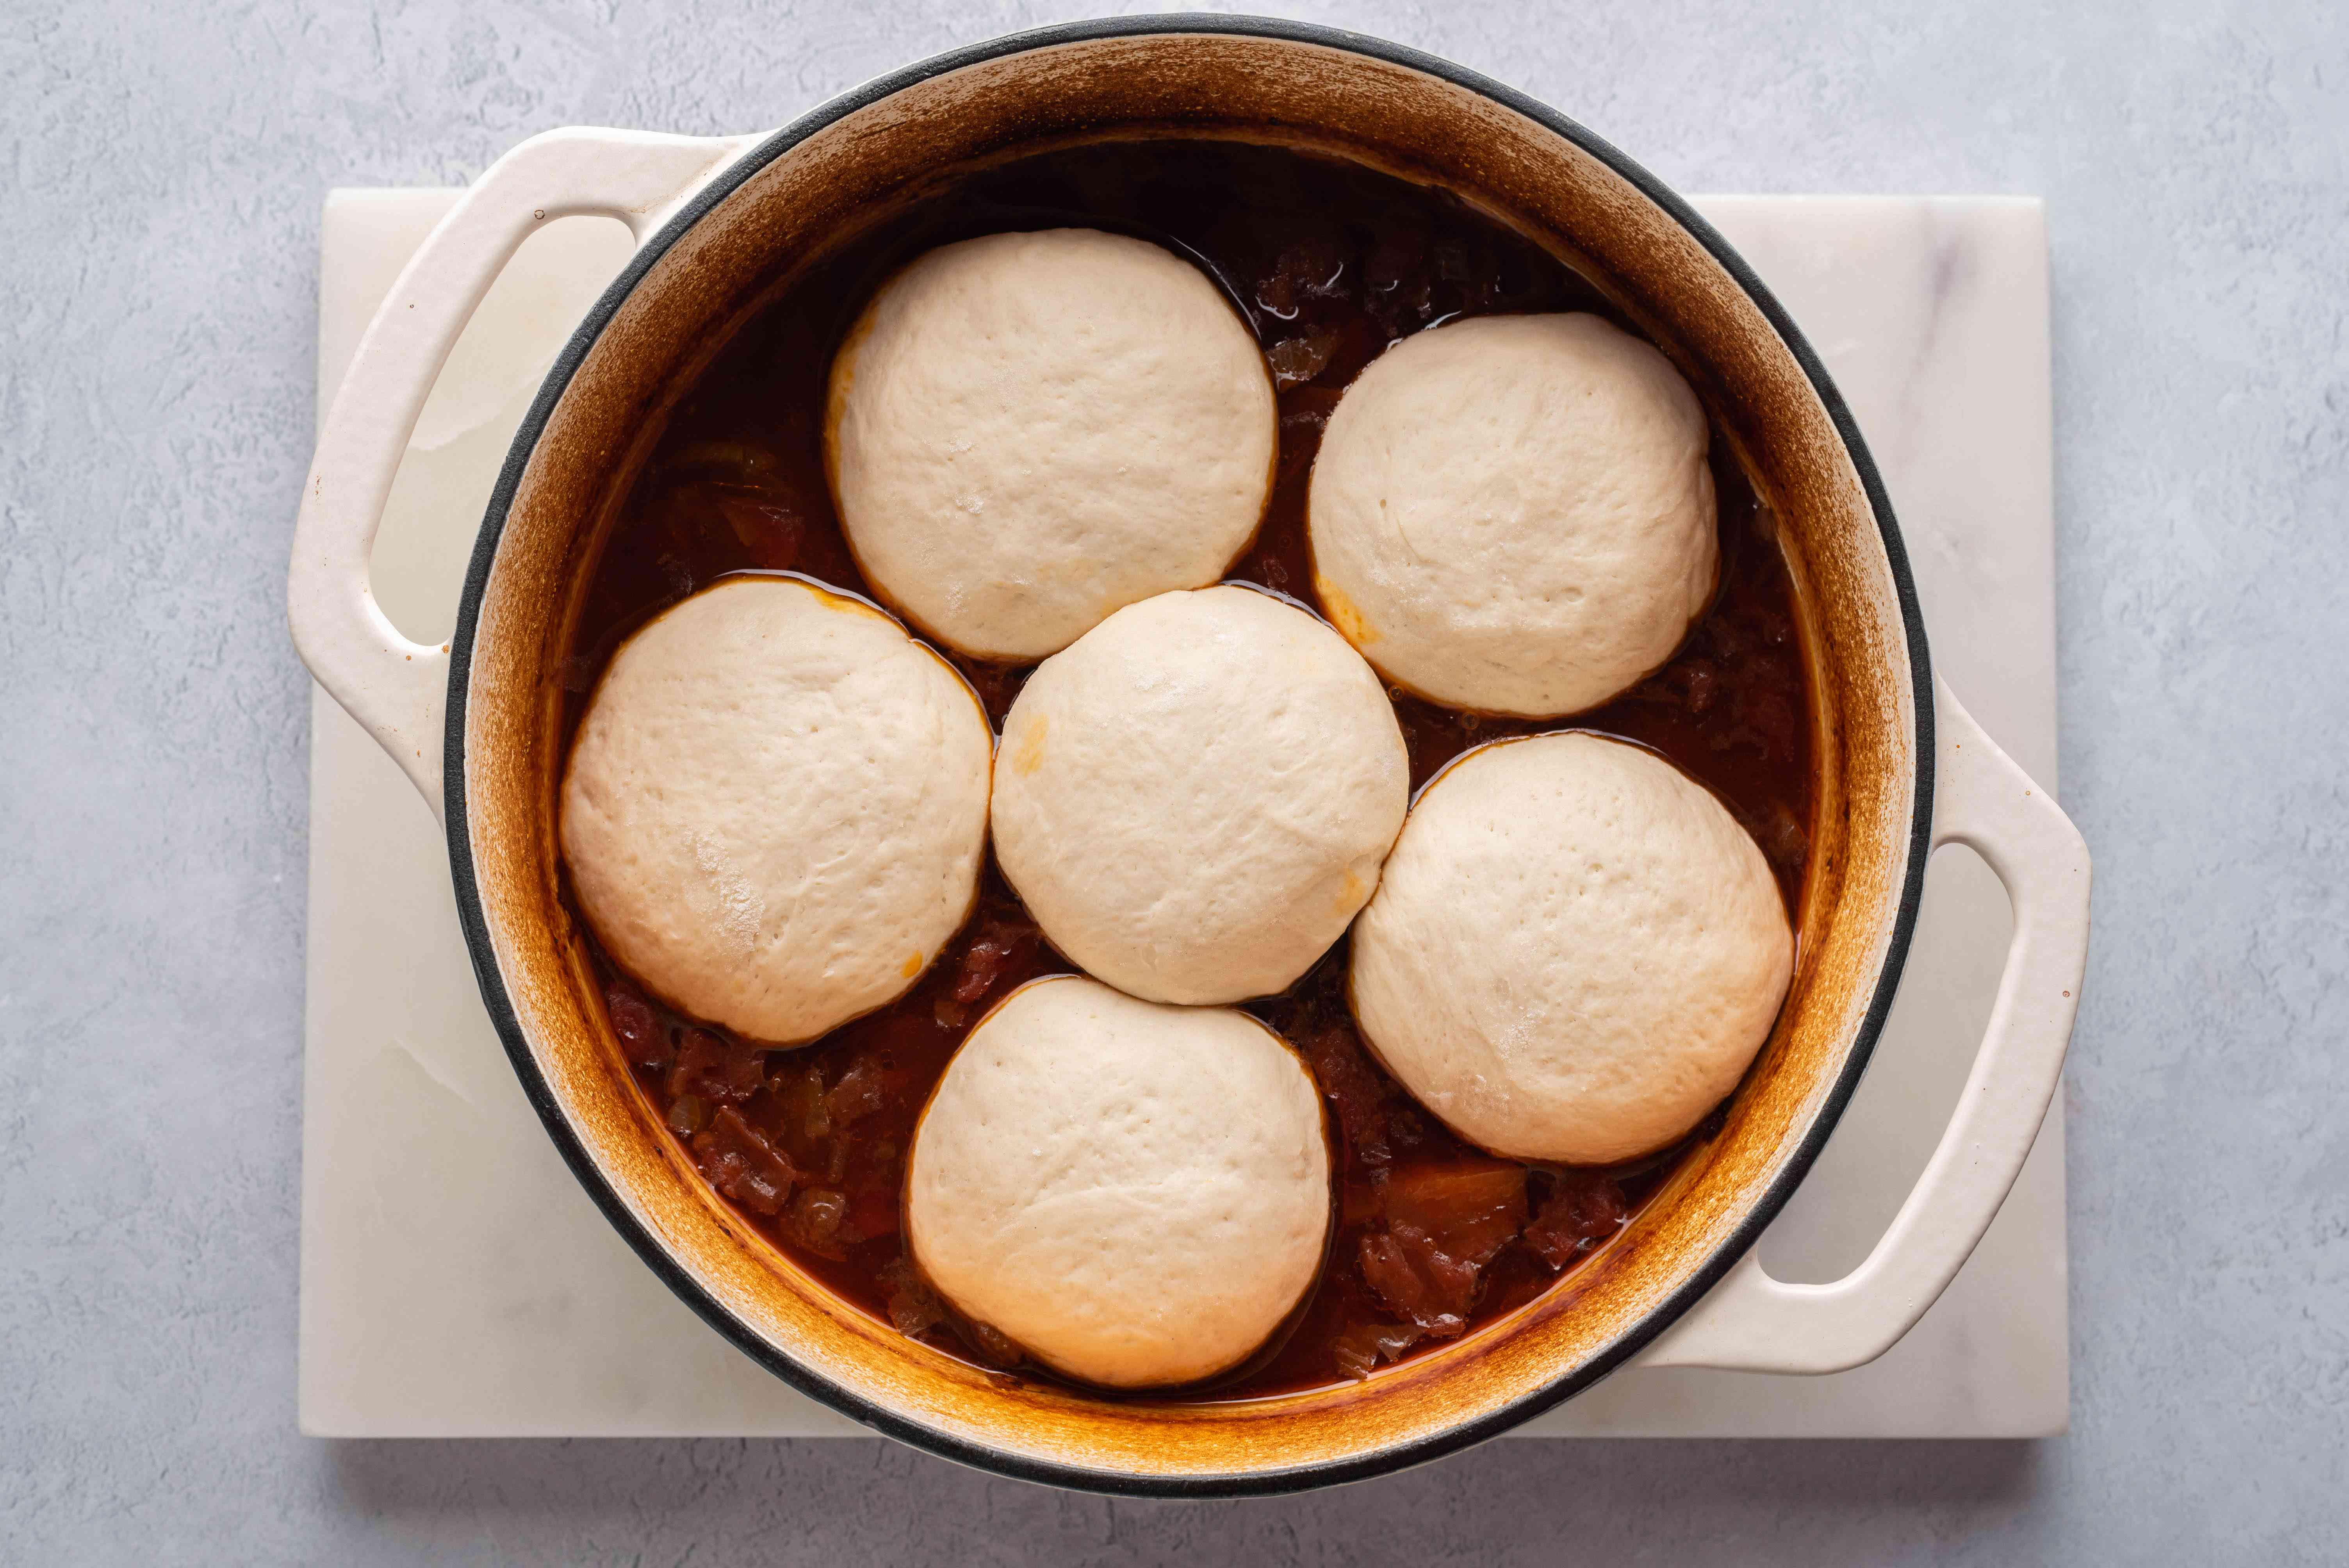 place the dough balls on top of a stew in a pot